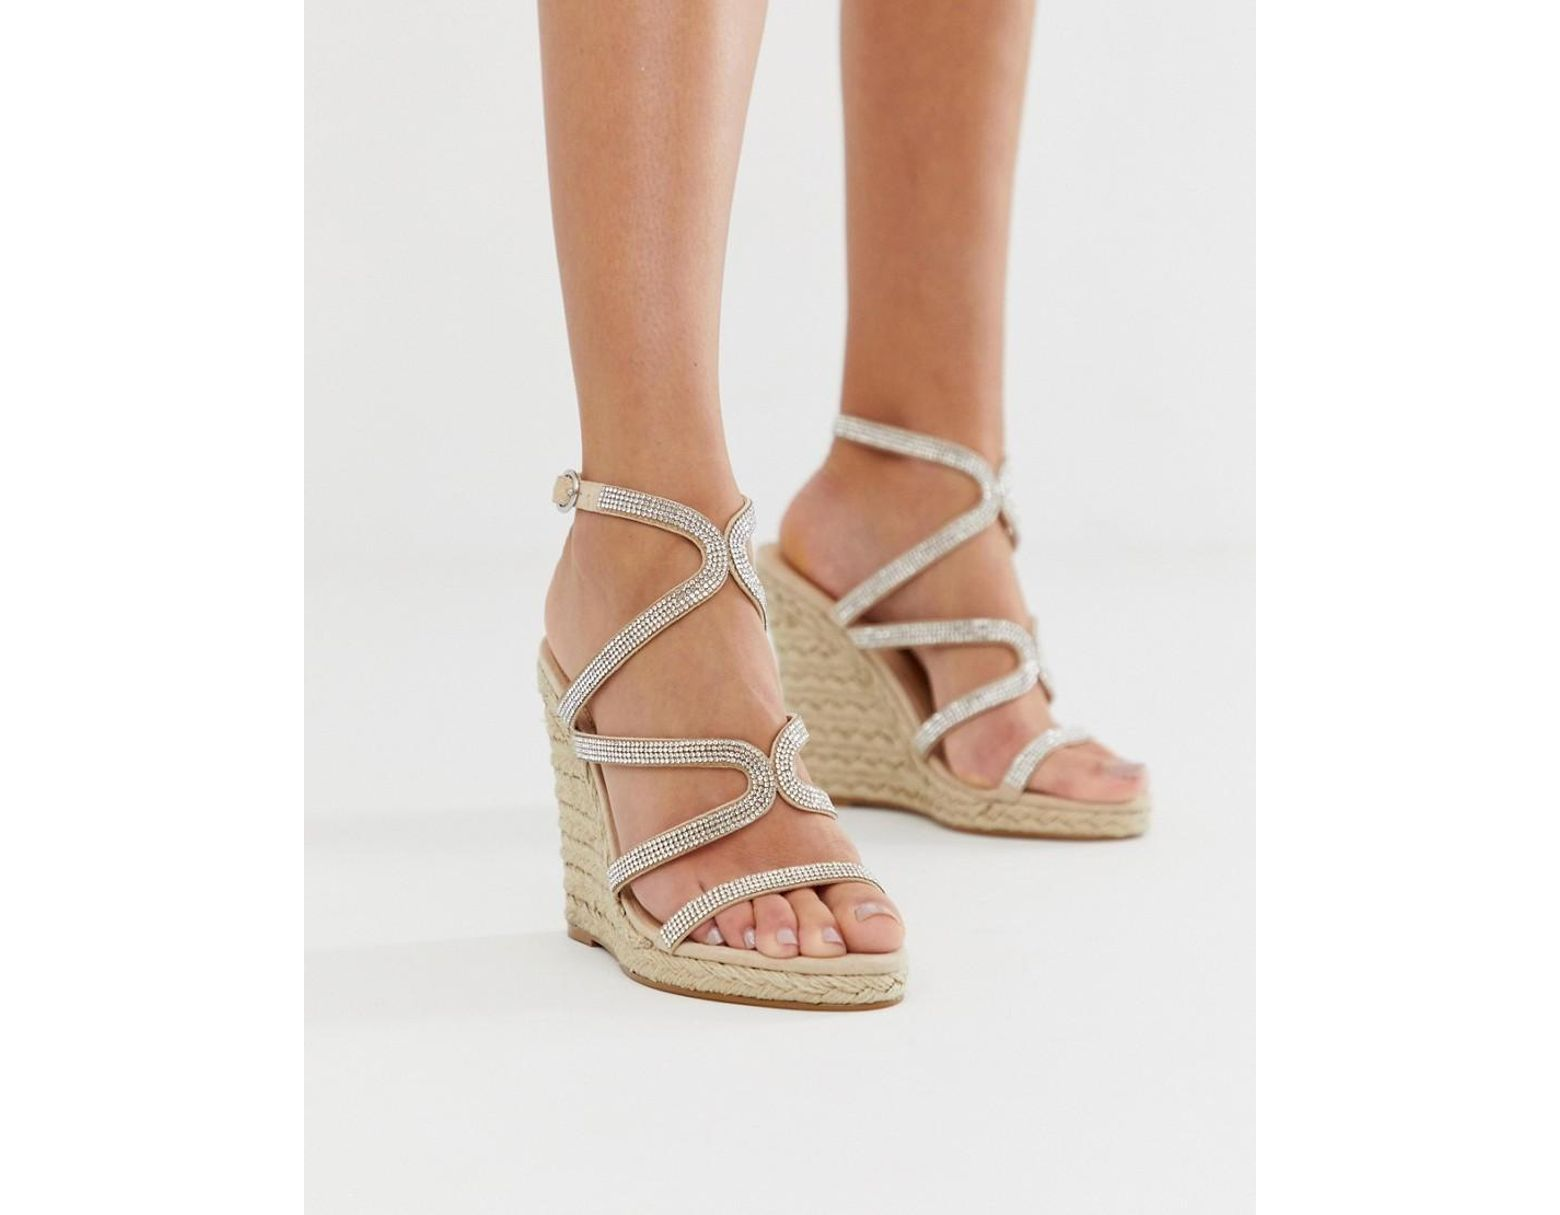 a684a5c2642 Women's Pink Honeydew Silver Embellished Espadrille Wedges